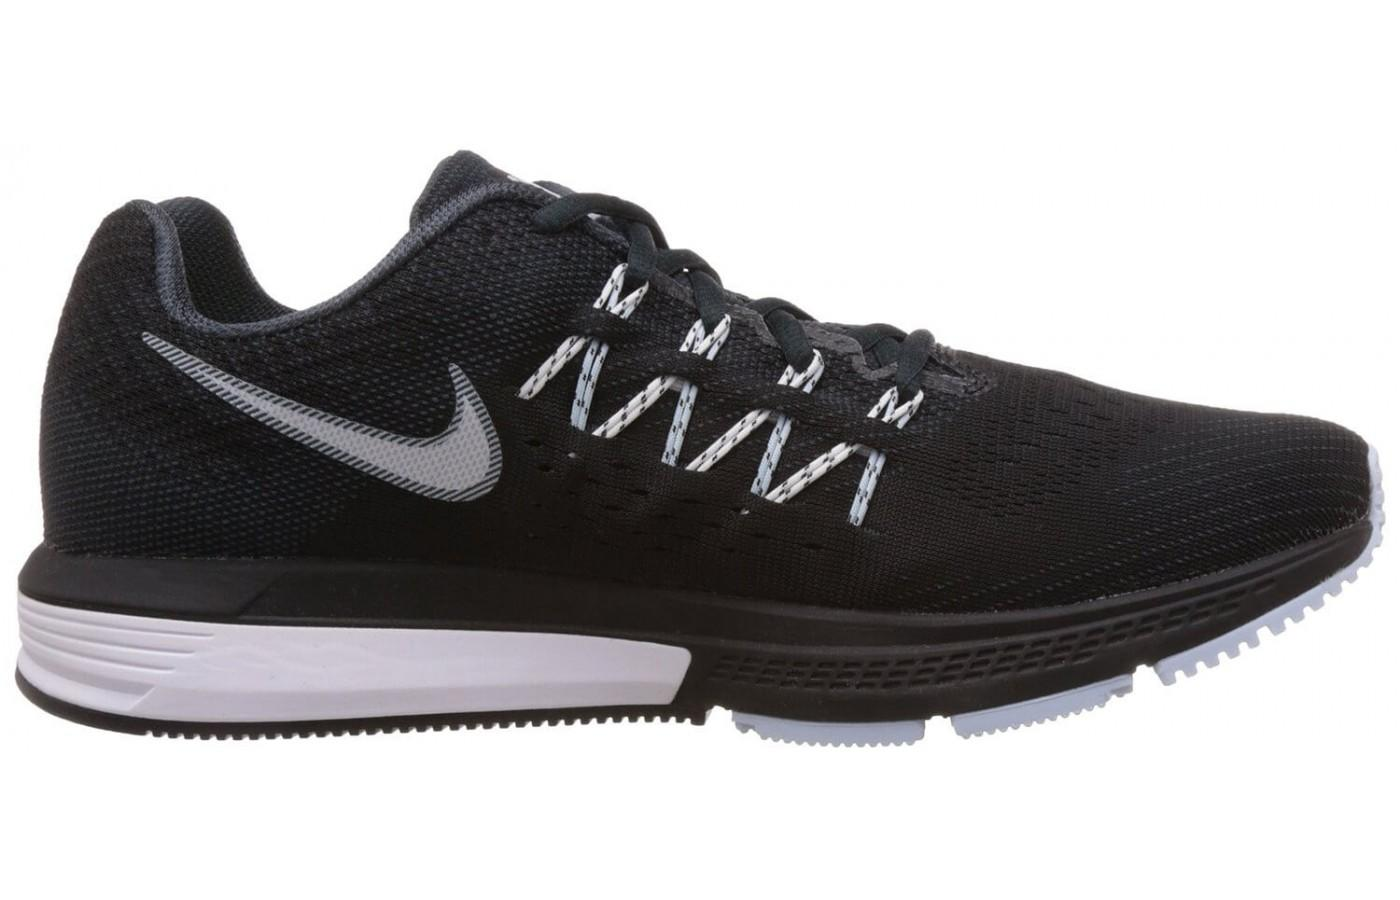 Nike Air Zoom Vomero 10 has a midsole made of lightweight Cushlon foam.